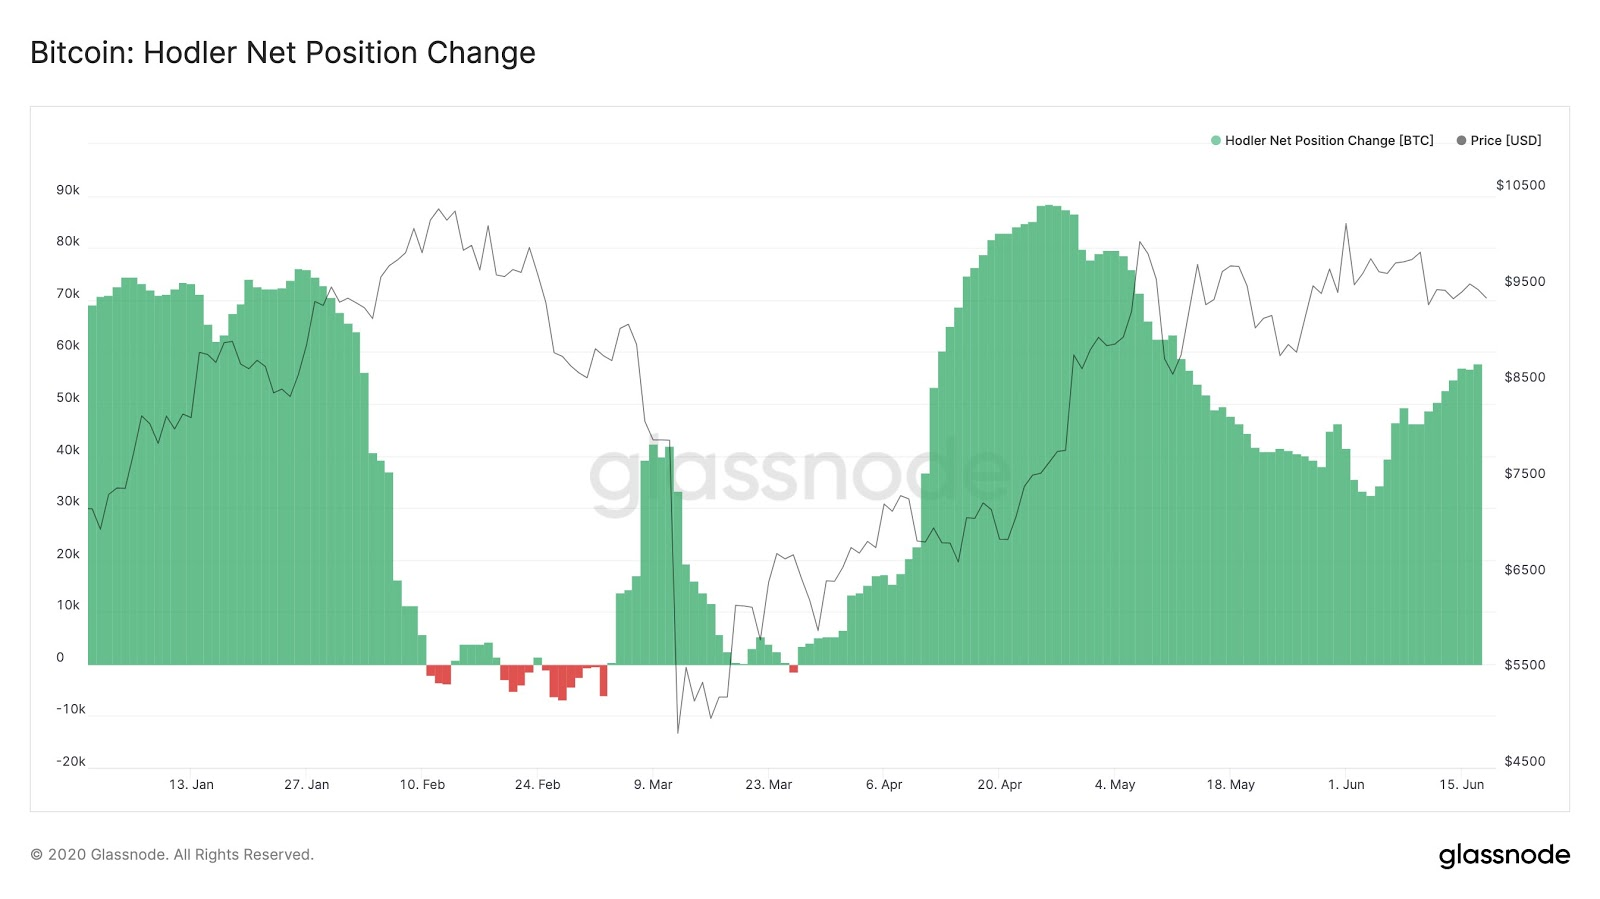 Bitcoin hodler net position change year to date chart